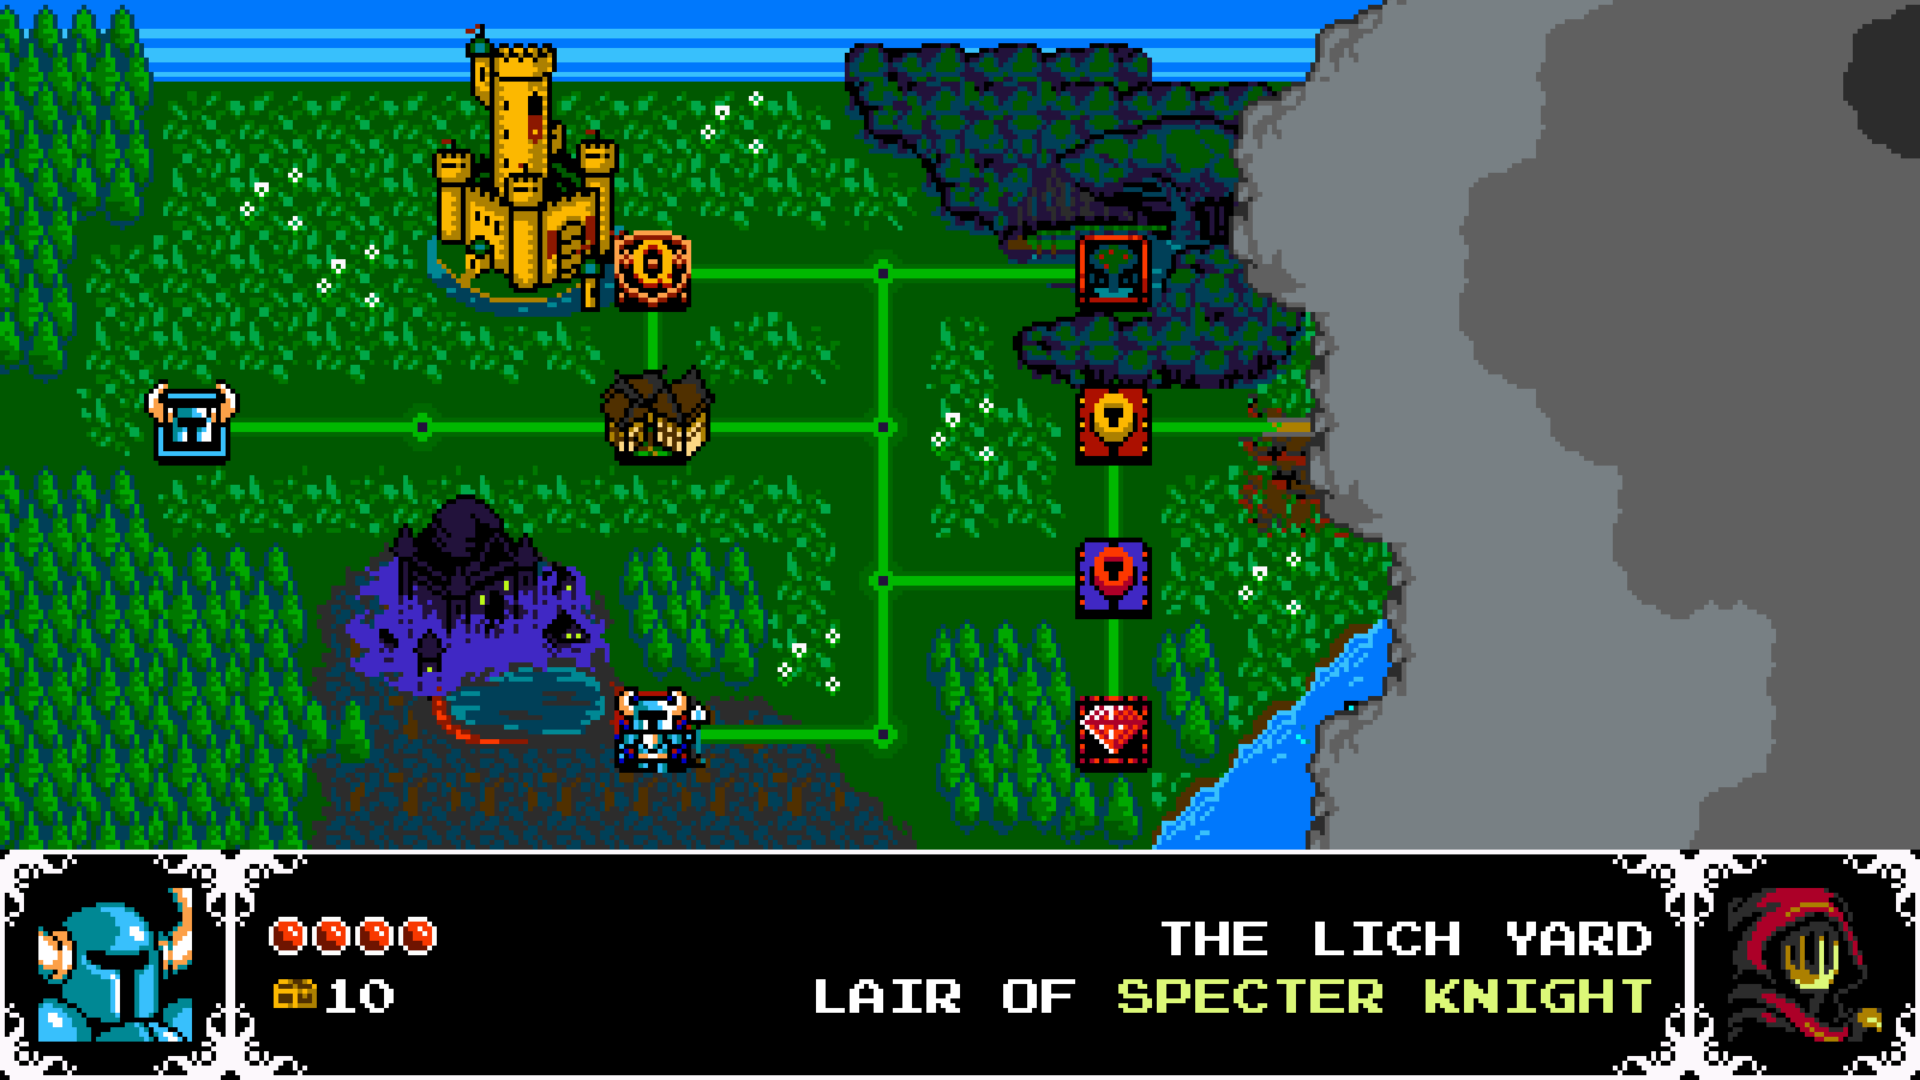 Shovel knight wii u review shovel knight screenshot of the world map gumiabroncs Image collections